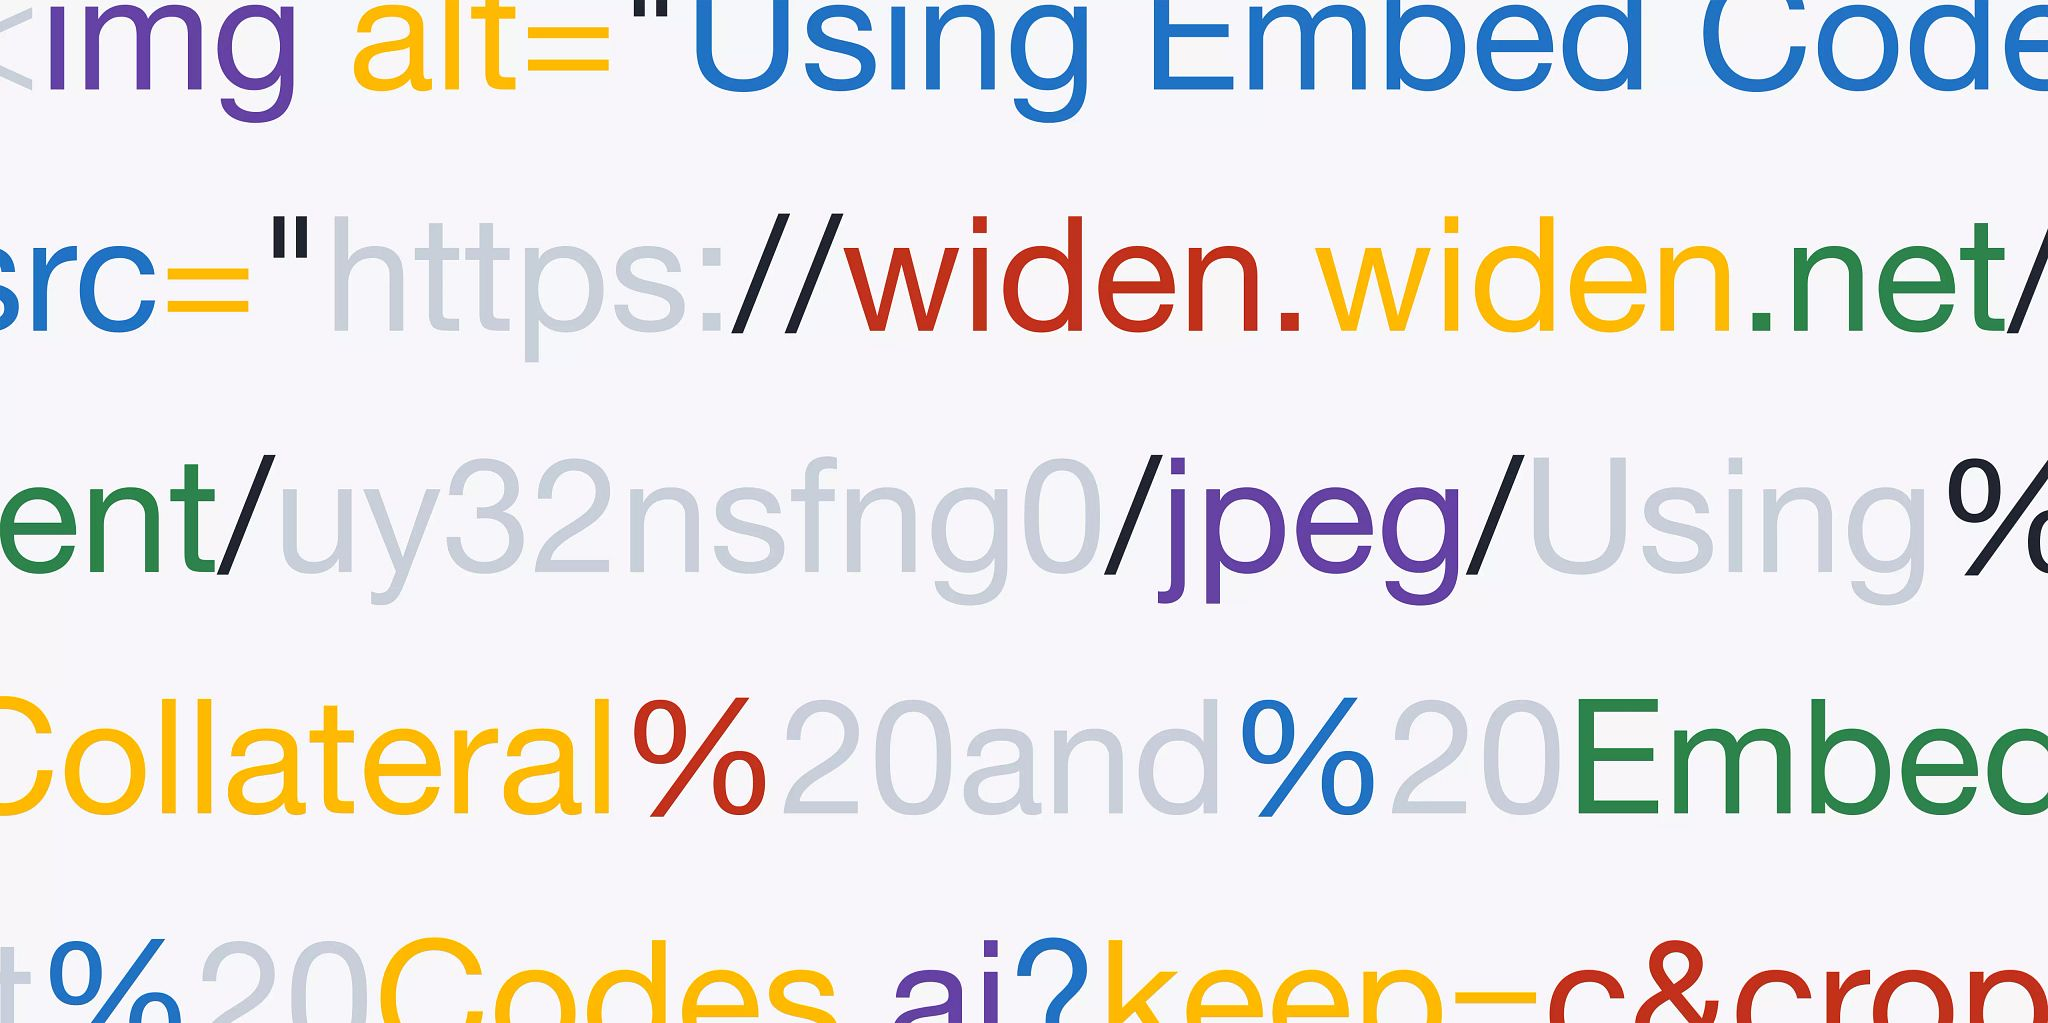 Five lines of colorful copy that is zoomed in on parts of an embed code used on websites.